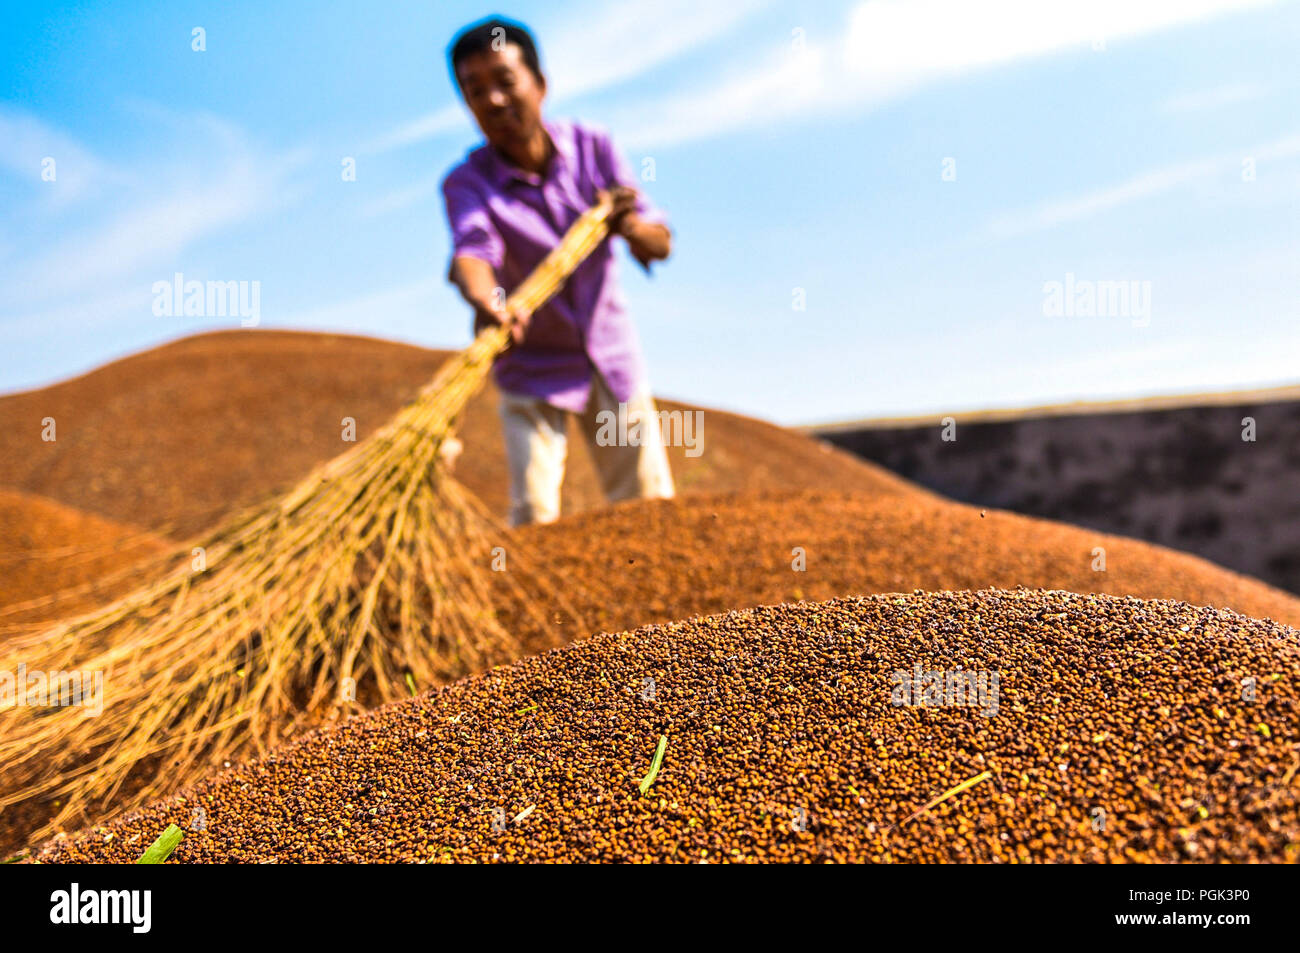 Zaoqiang, China's Hebei Province. 27th Aug, 2018. A villager sorts out impure sorghum in Xizhaozhuang Village of Xiaozhang Township in Zaoqiang County, north China's Hebei Province, Aug. 27, 2018. Since 2018, Zaoqiang government has been engaged in helping villagers get rid of poverty by instructing them to plant minor grain crops. Credit: Li Xiaoguo/Xinhua/Alamy Live News - Stock Image